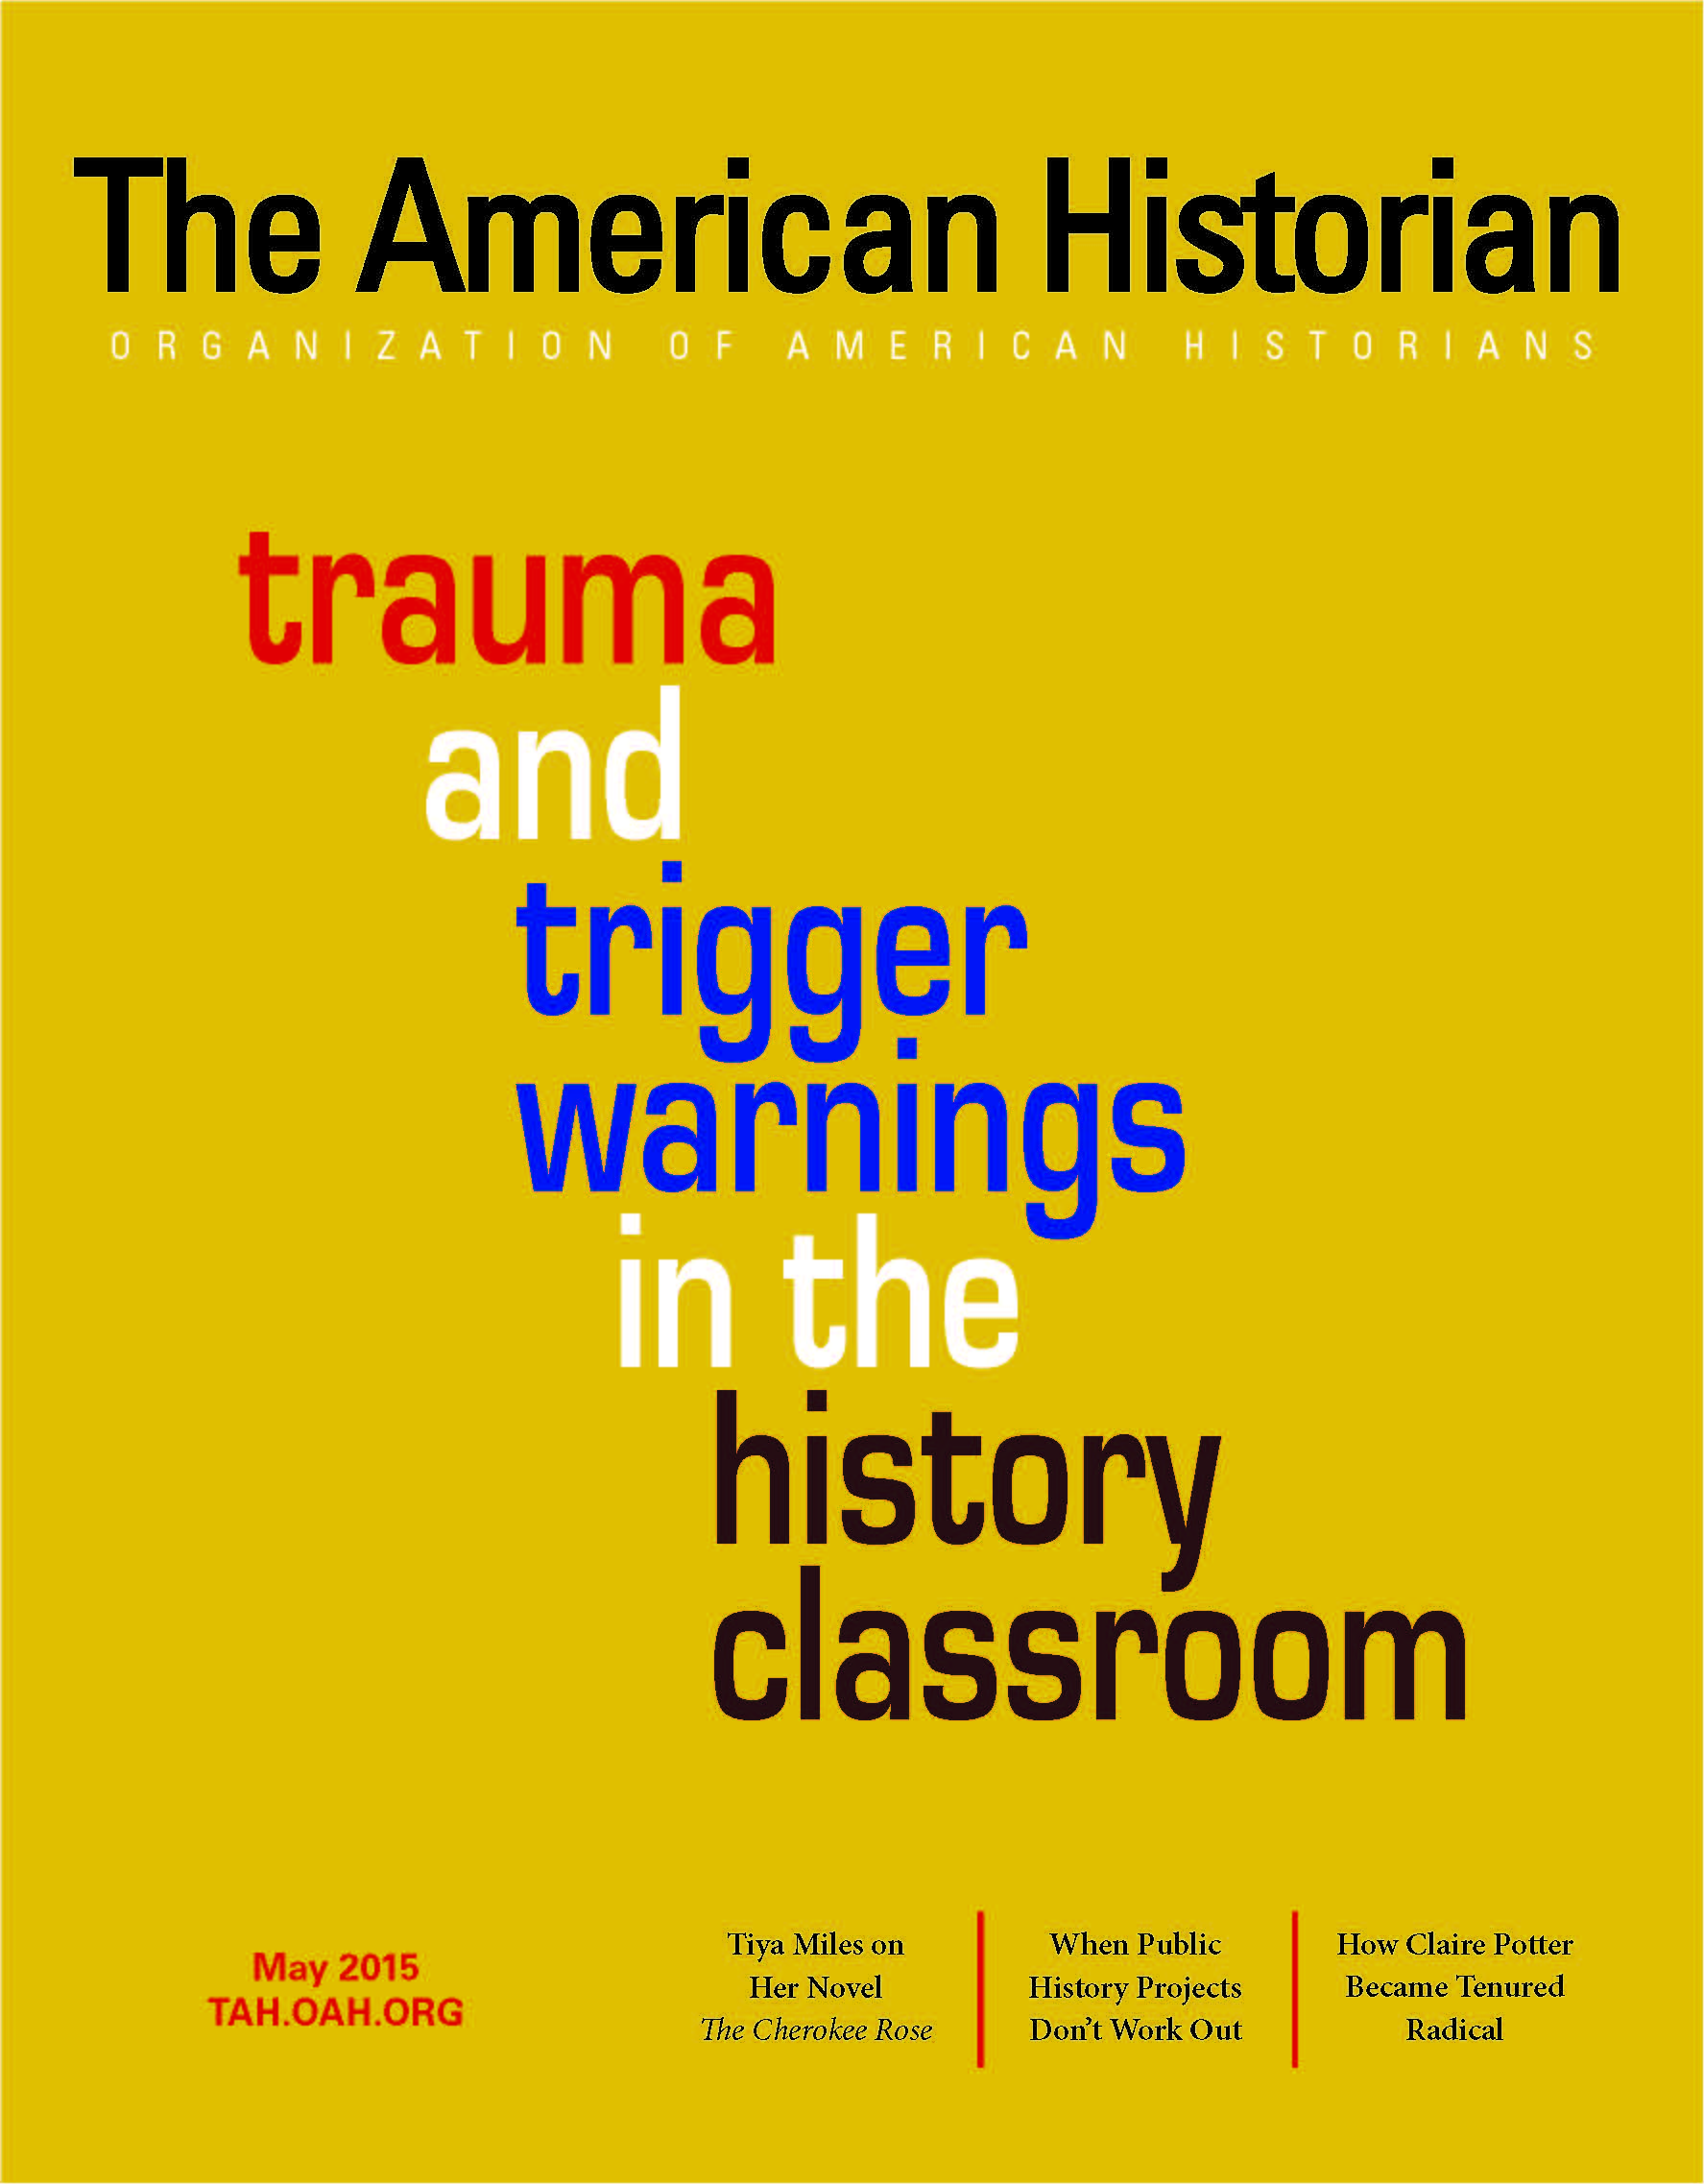 Cover image with link to The American Historian issue for May 2015